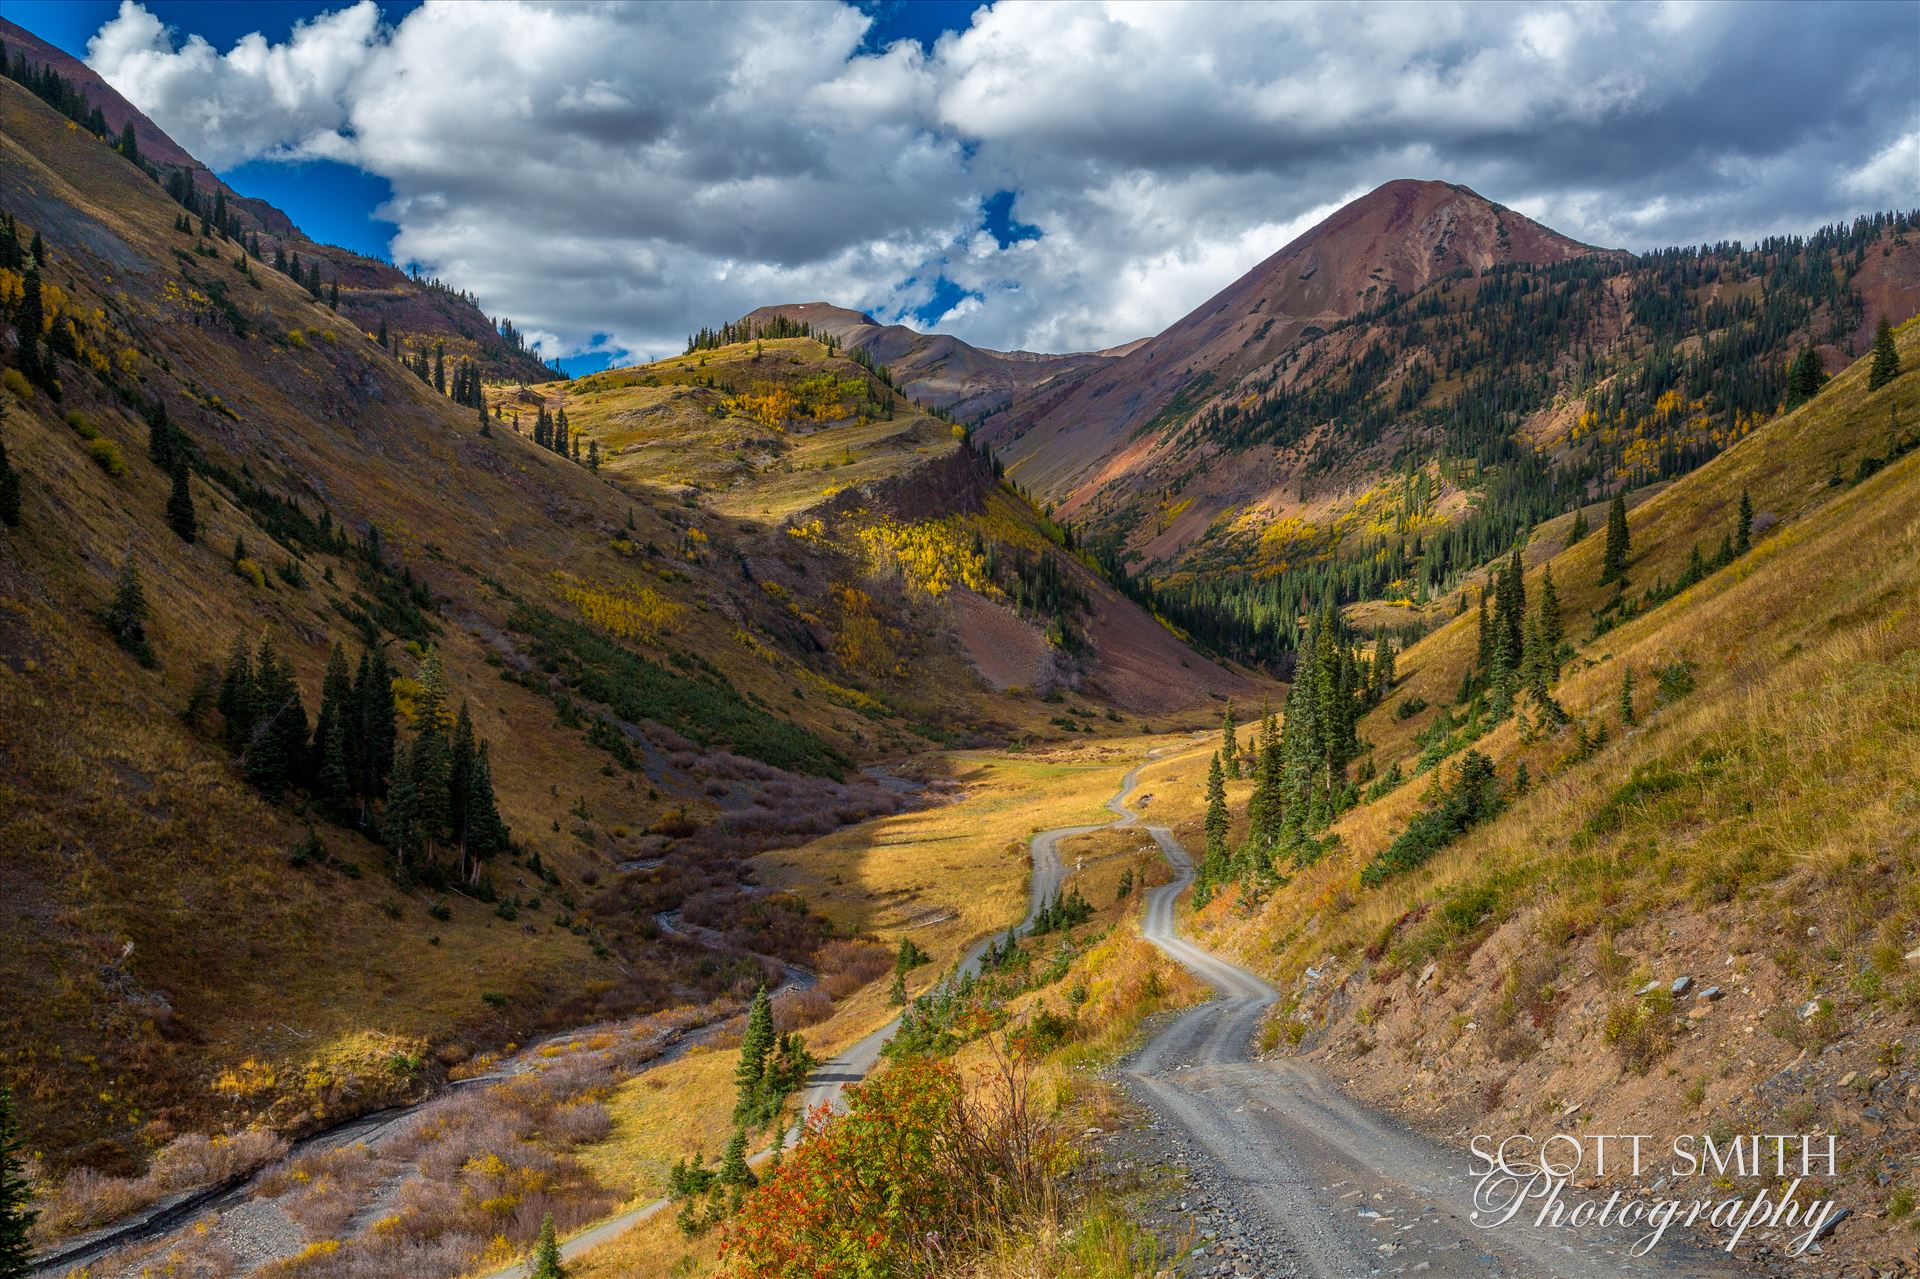 Mount Baldy from Washington Gulch Mount Baldy, the reddish colored mountain the background, from Washington Gulch. Just outside of Crested Butte, Colorado on Schofield Pass. by Scott Smith Photos